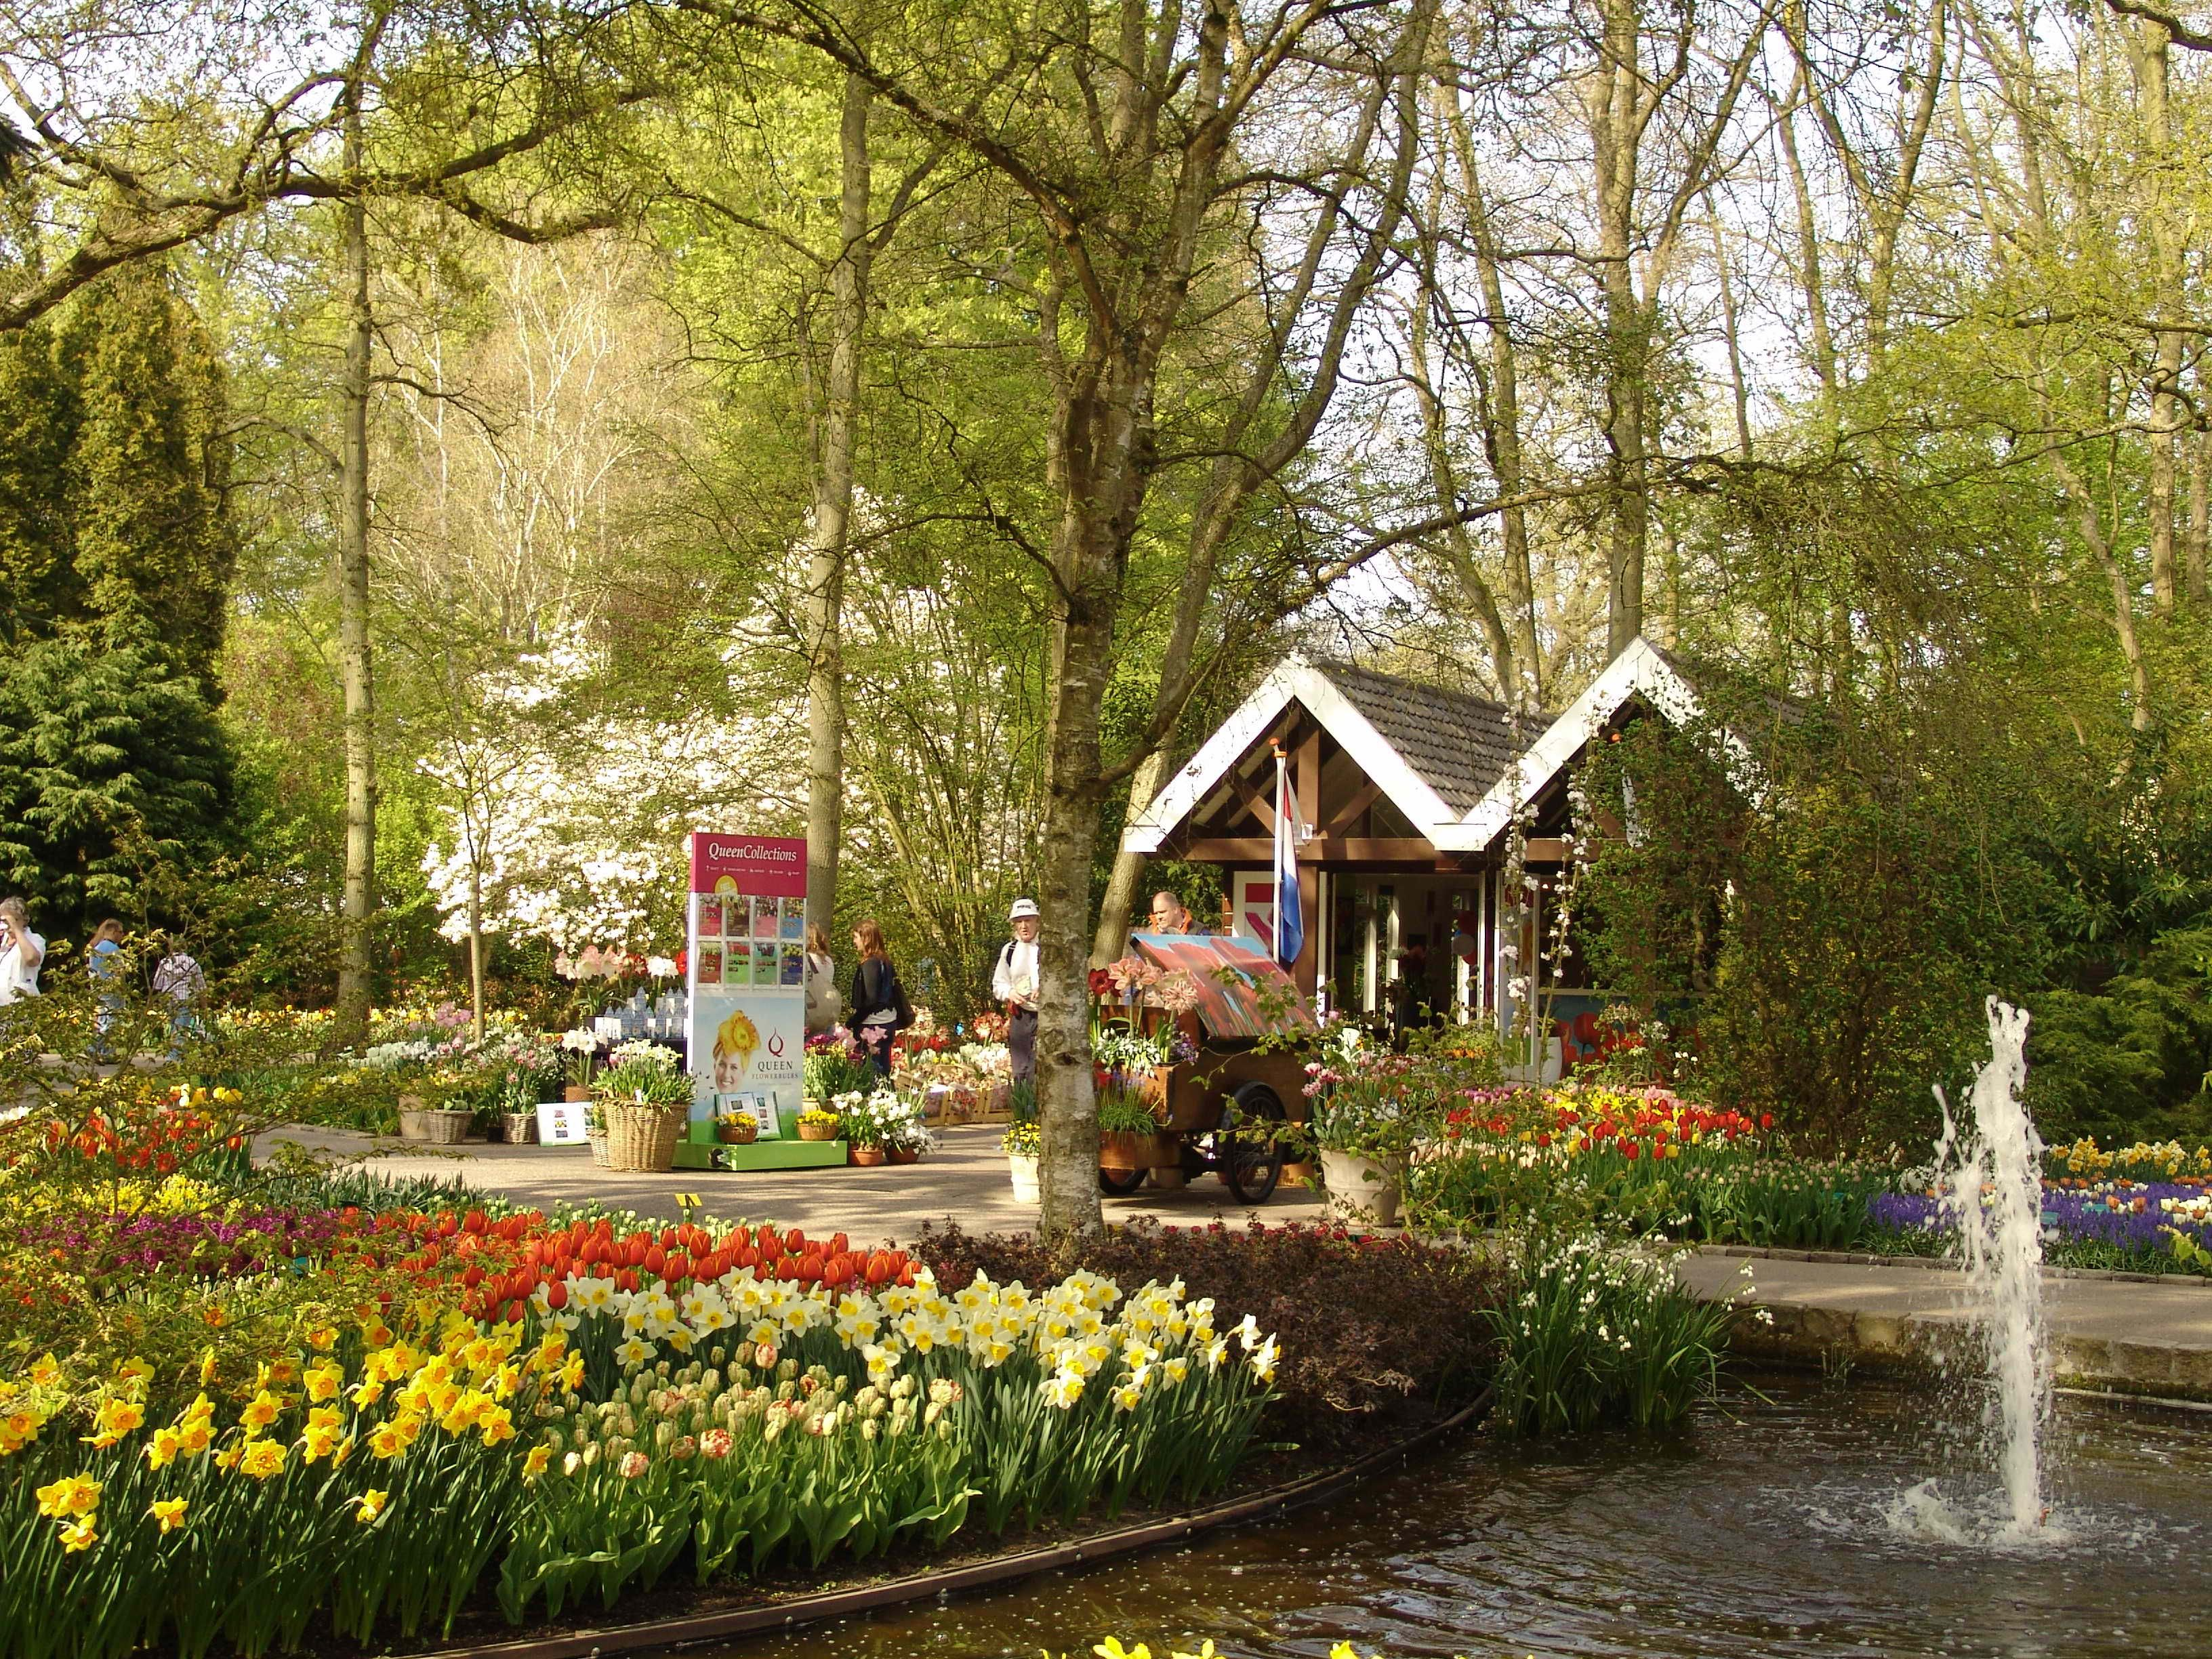 Our own piece of Keukenhof in 2013. This year, it will look just a ...